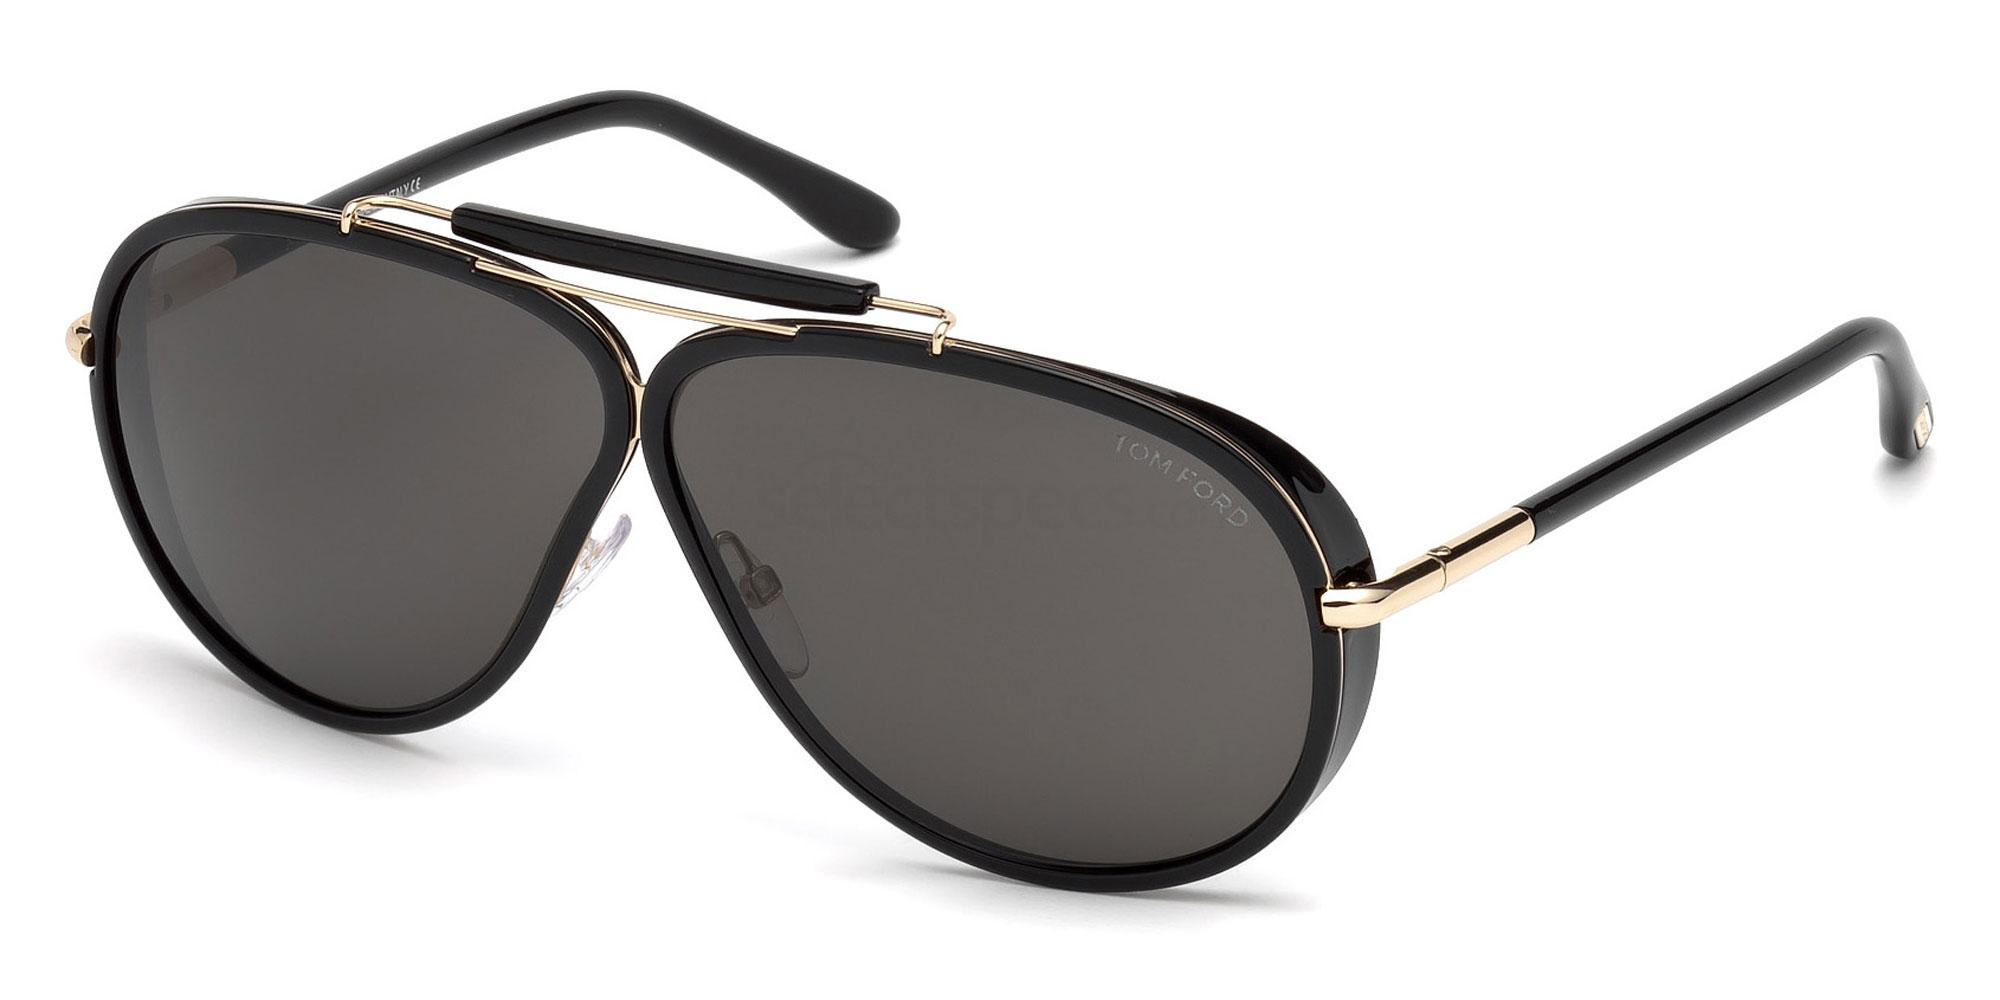 01A FT0509 , Tom Ford